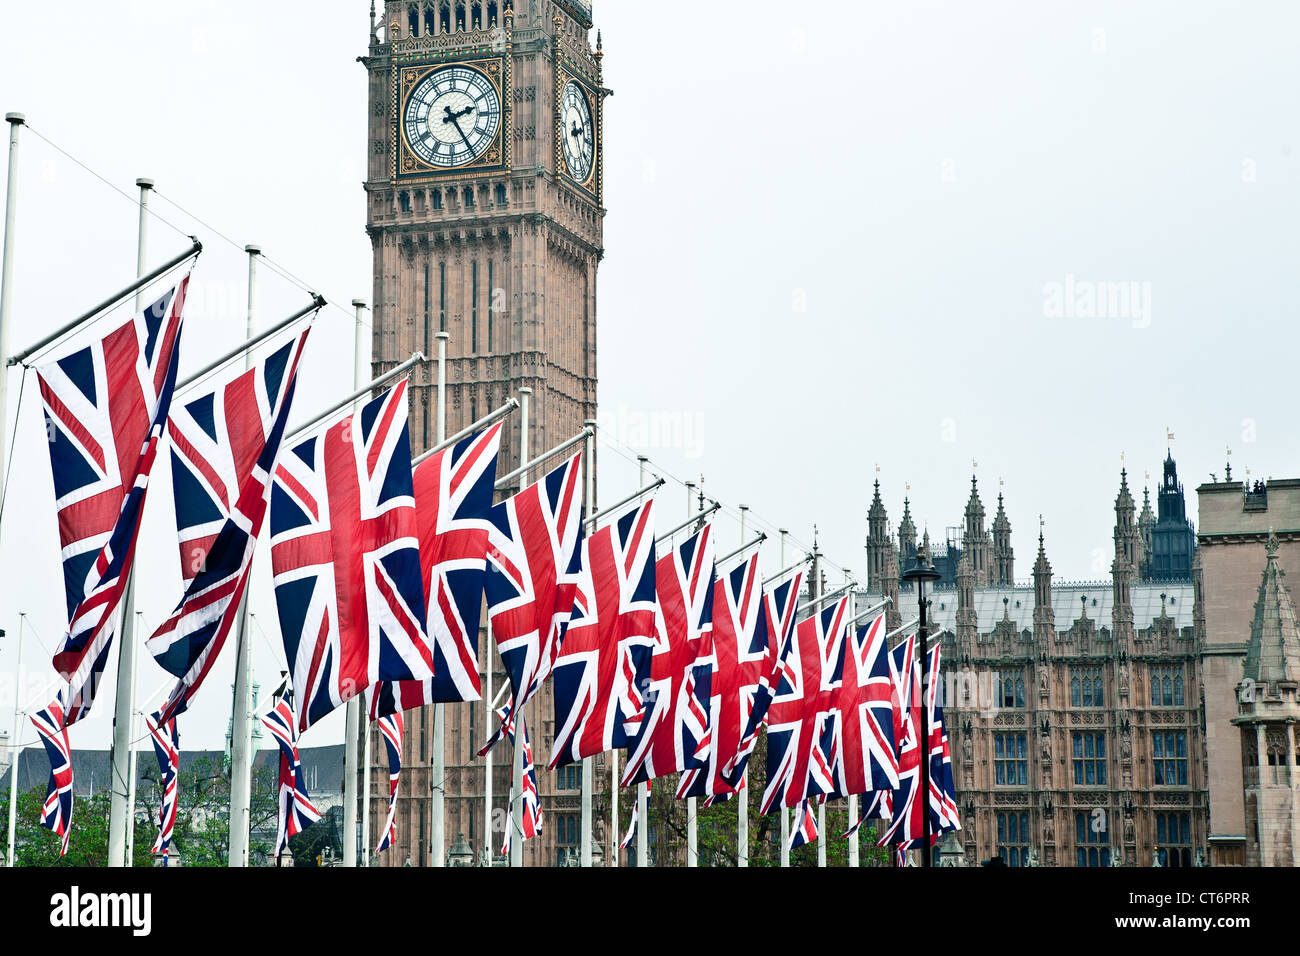 Union Jack flags flying in front of the Big Ben and The Houses of Parliament. Taken on the day of wedding Royal - Stock Image